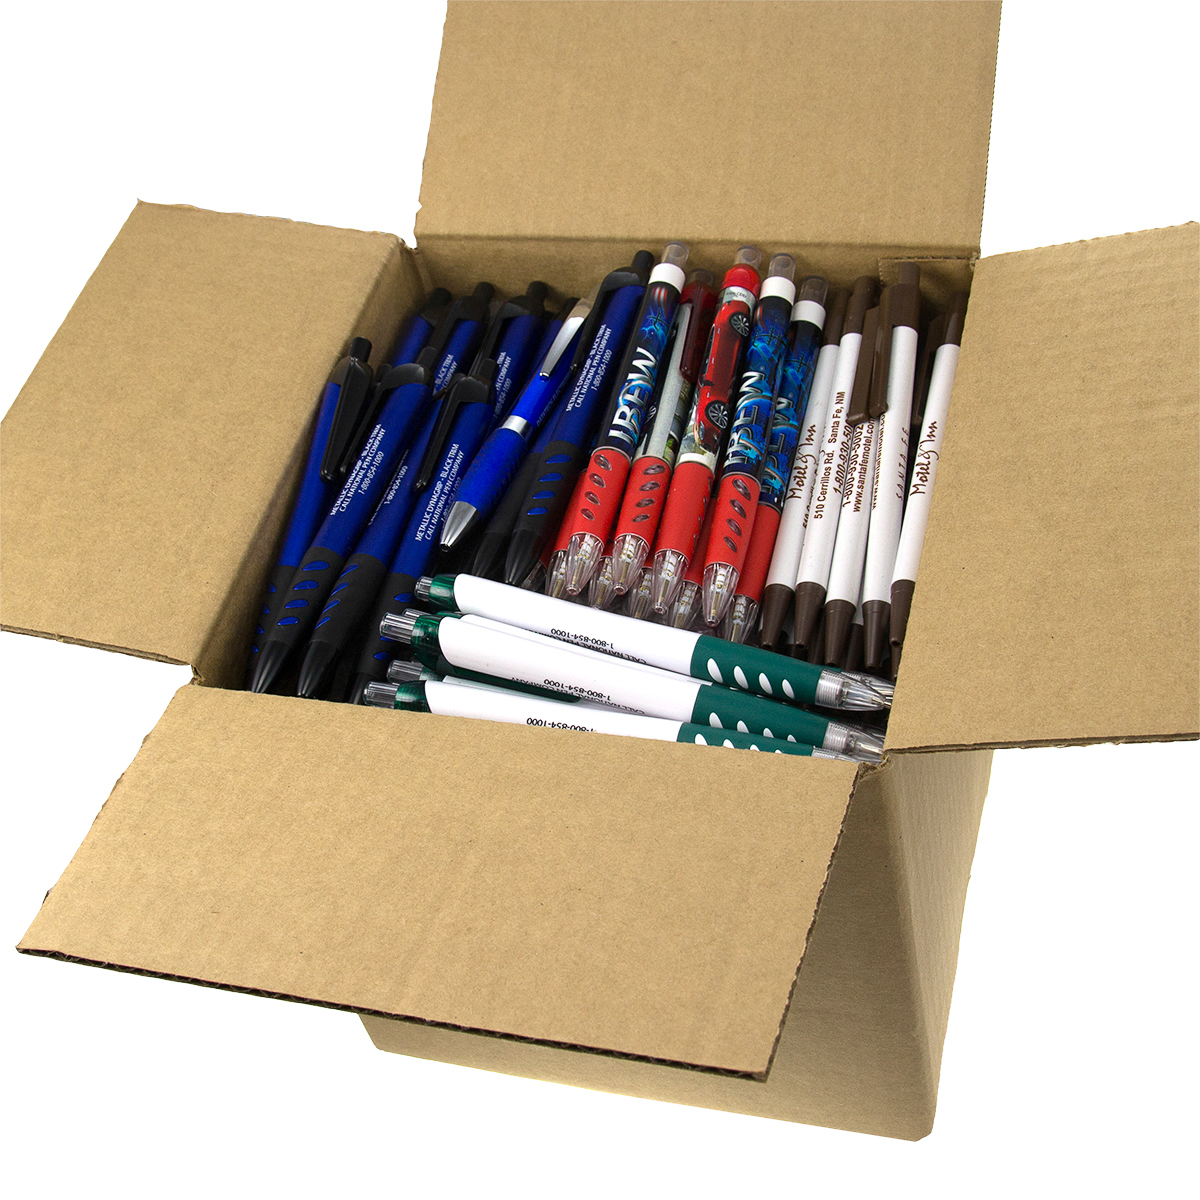 Click here to buy 5lb Box of Assorted Misprint Ink Pens Ballpoint Retractable Office Bulk Lot by Dg Collection.